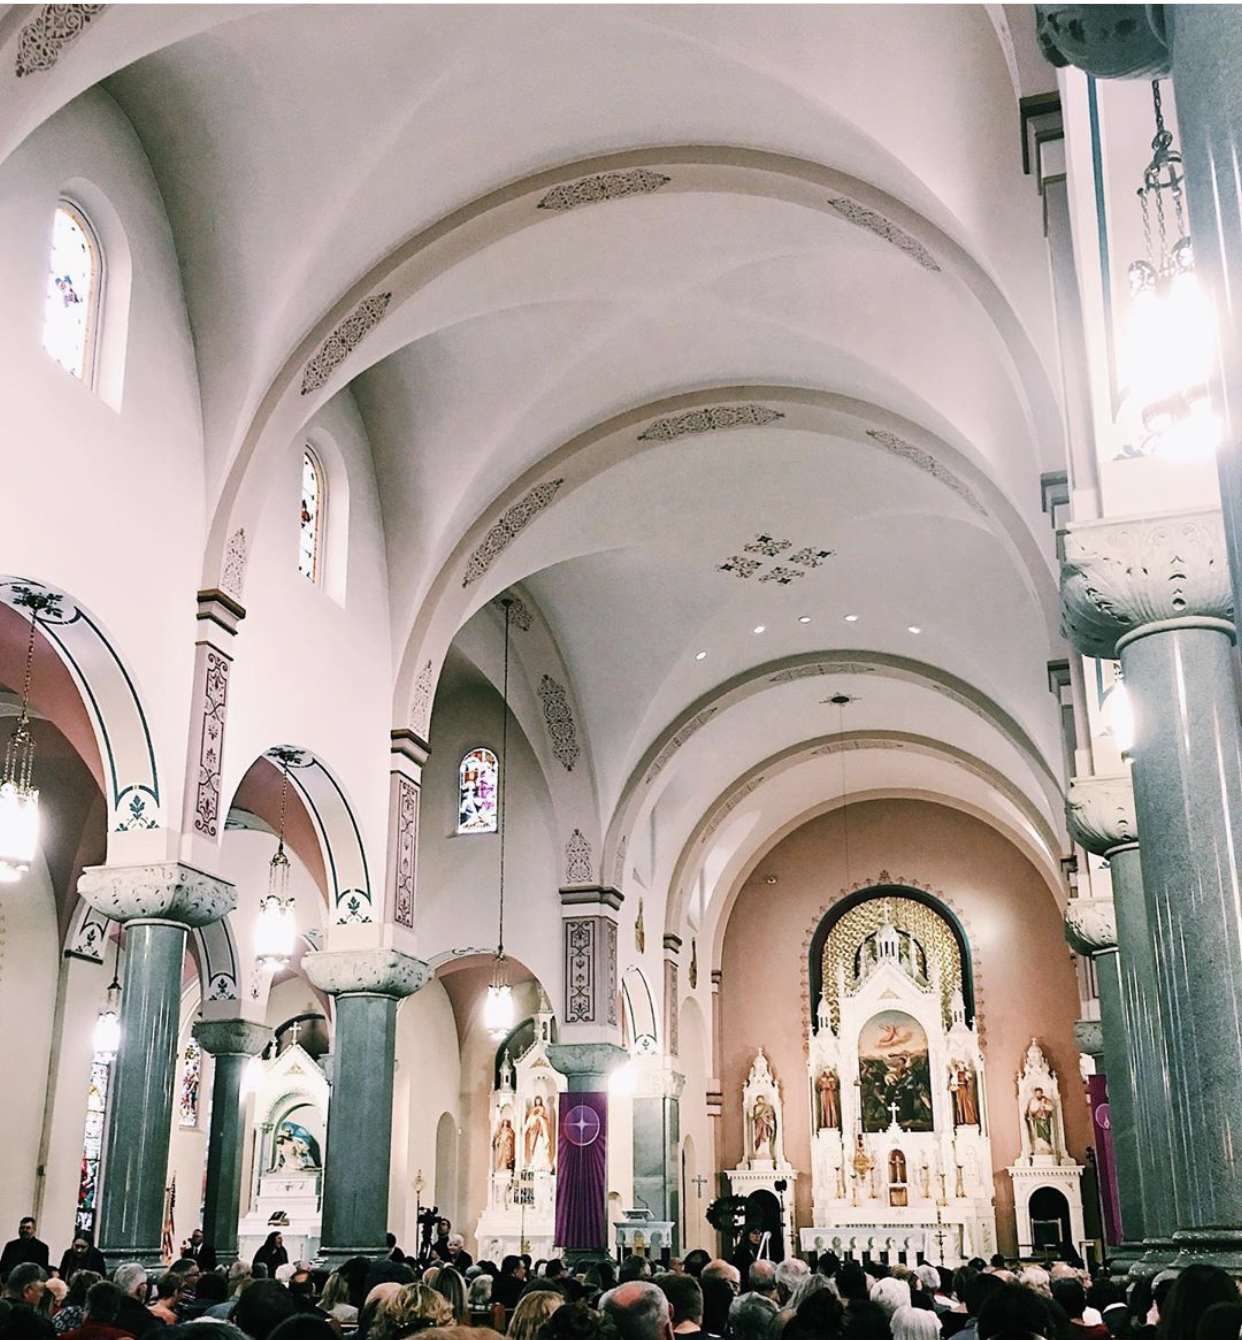 Audience members pack the Basilica of St. Fidelis before the start of the concert. The Basilica is commonly referred to as